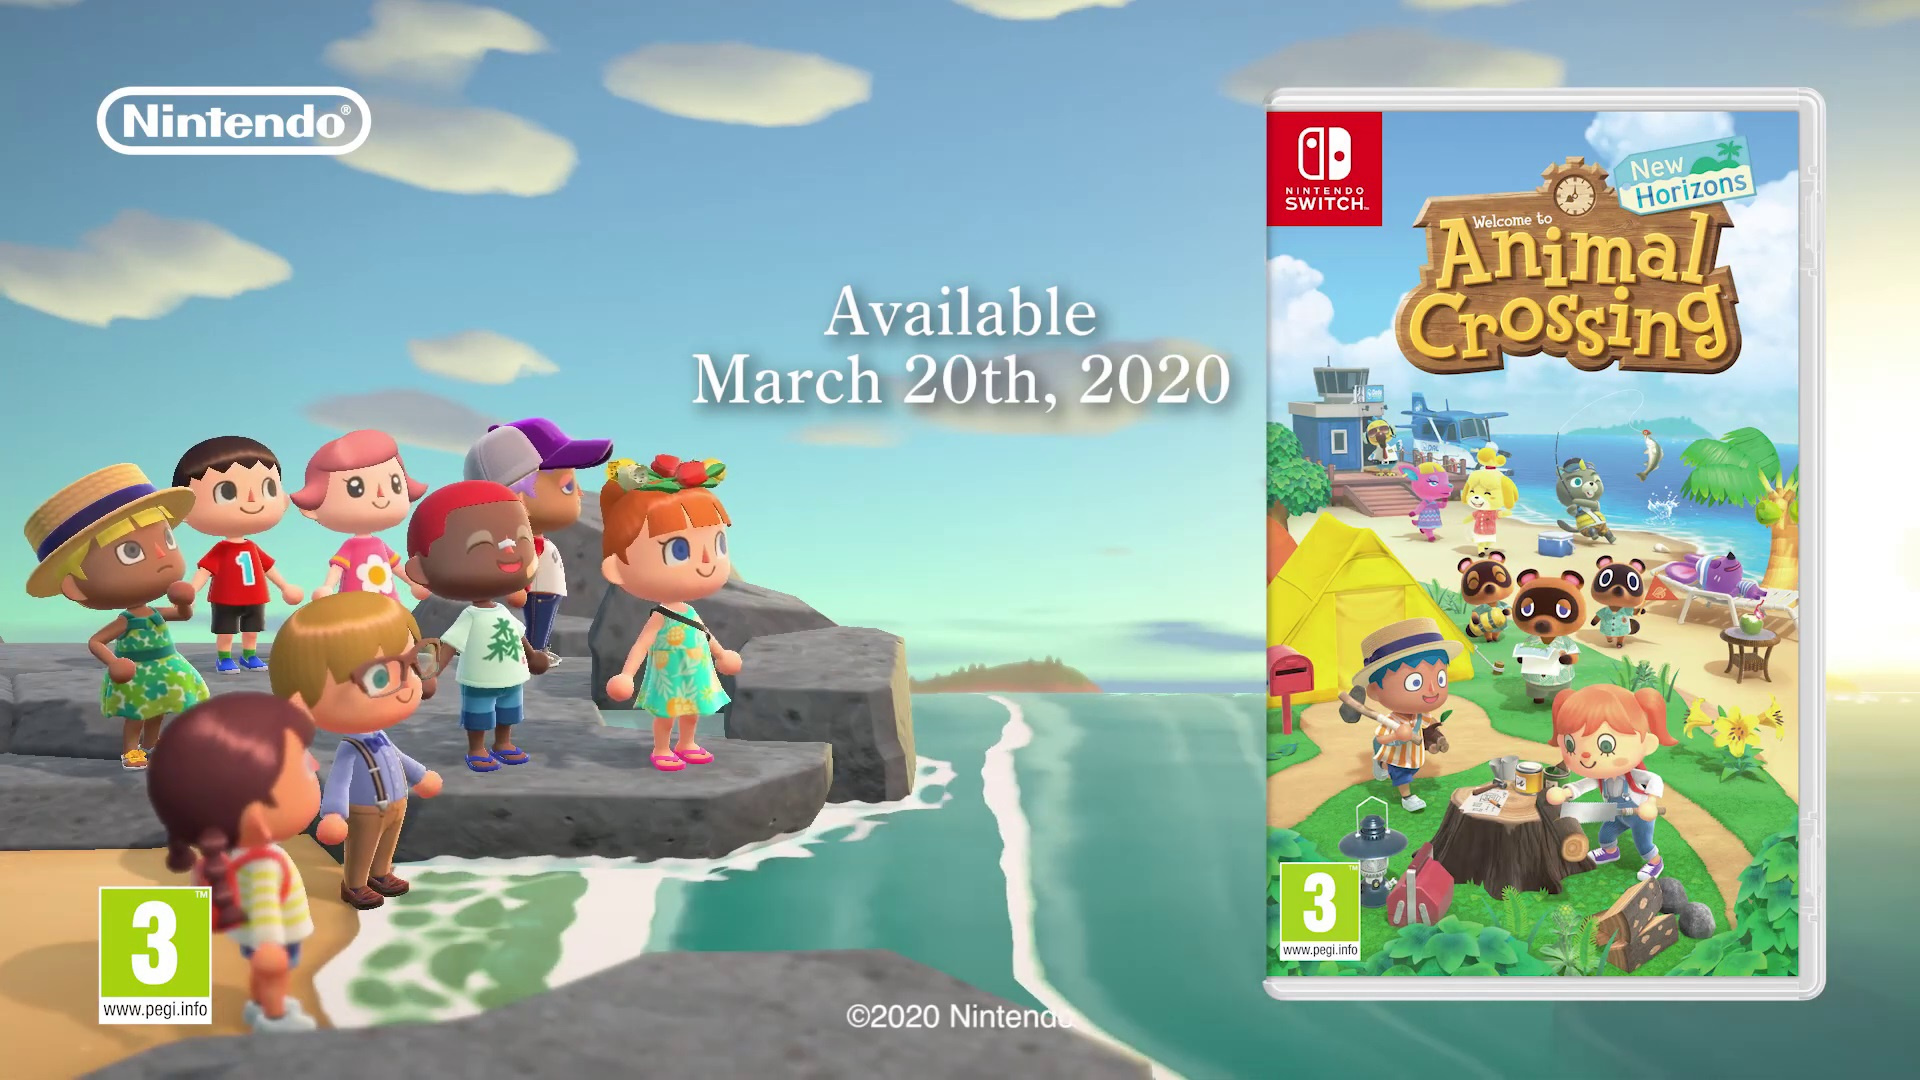 Video Nintendo Releases New Commercial And Boxart For Animal